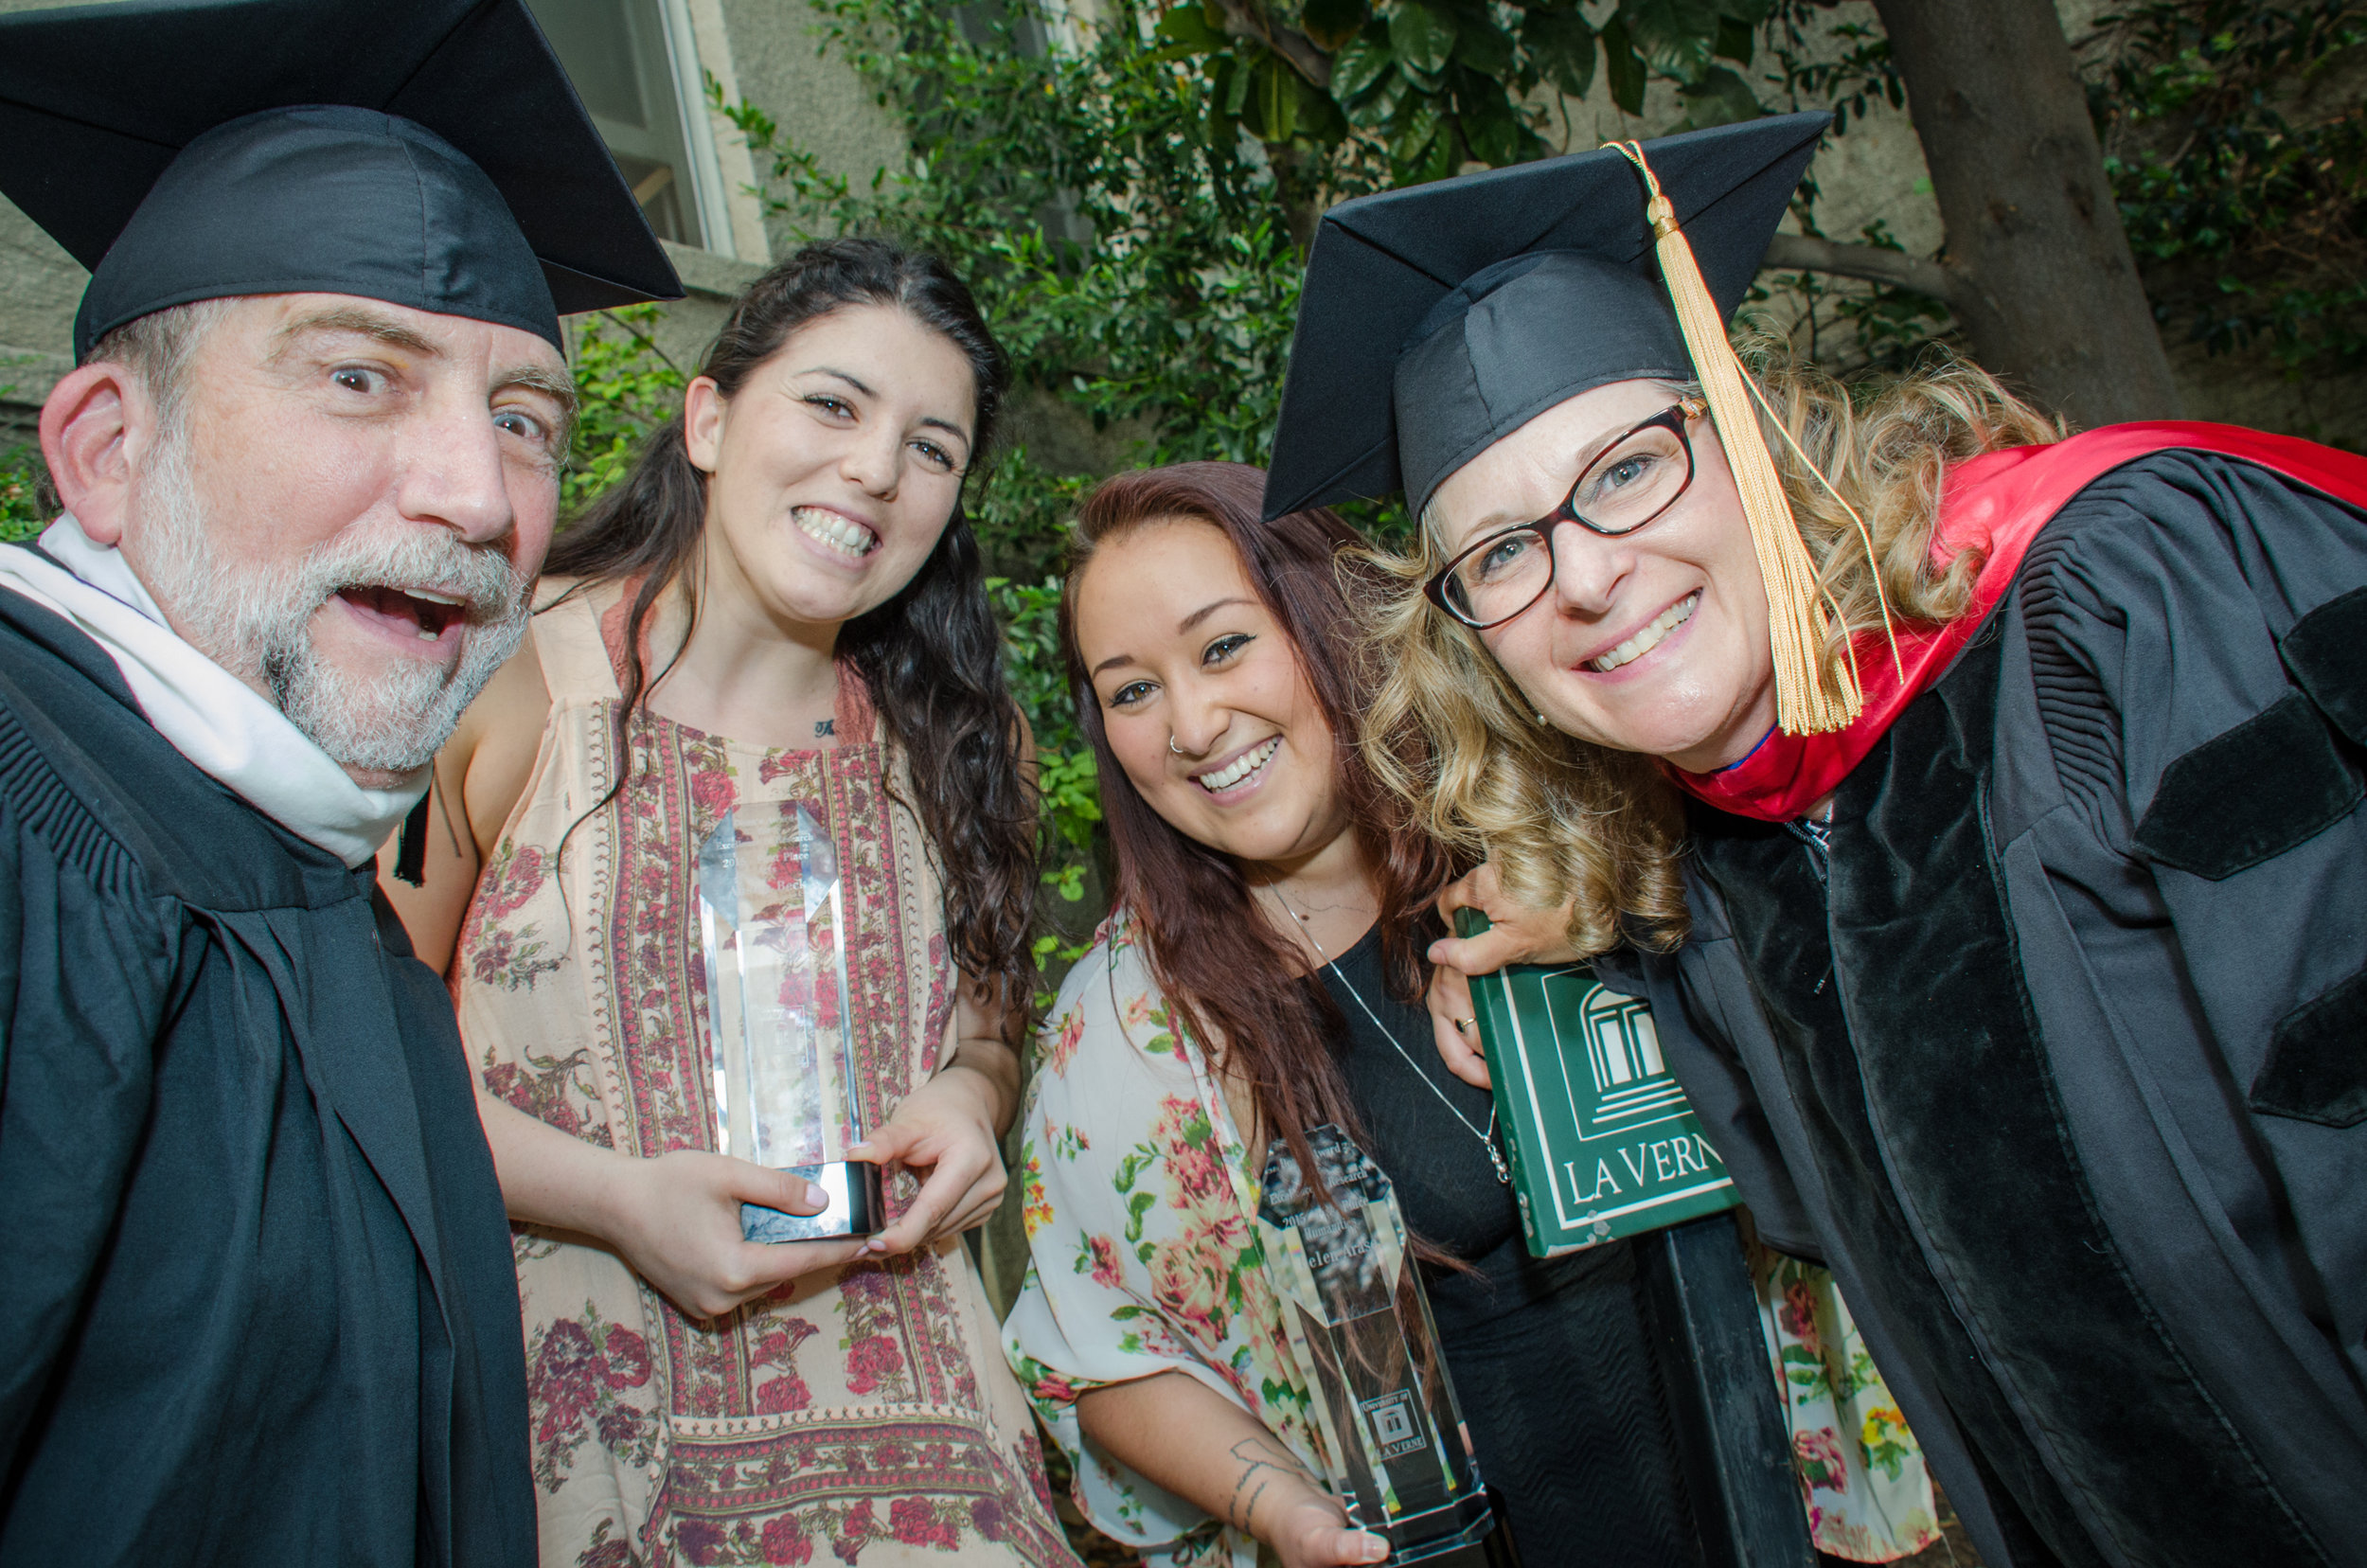 Gary Colby, photography department chair, photojournalism degree adviser and real-life best human in the world; Austen Beck, Arts category winner; me; Stacey McCarroll Cutshaw, visiting professor of photography - Dean's Award for Excellence in Undergraduate Research ceremony, May 2015